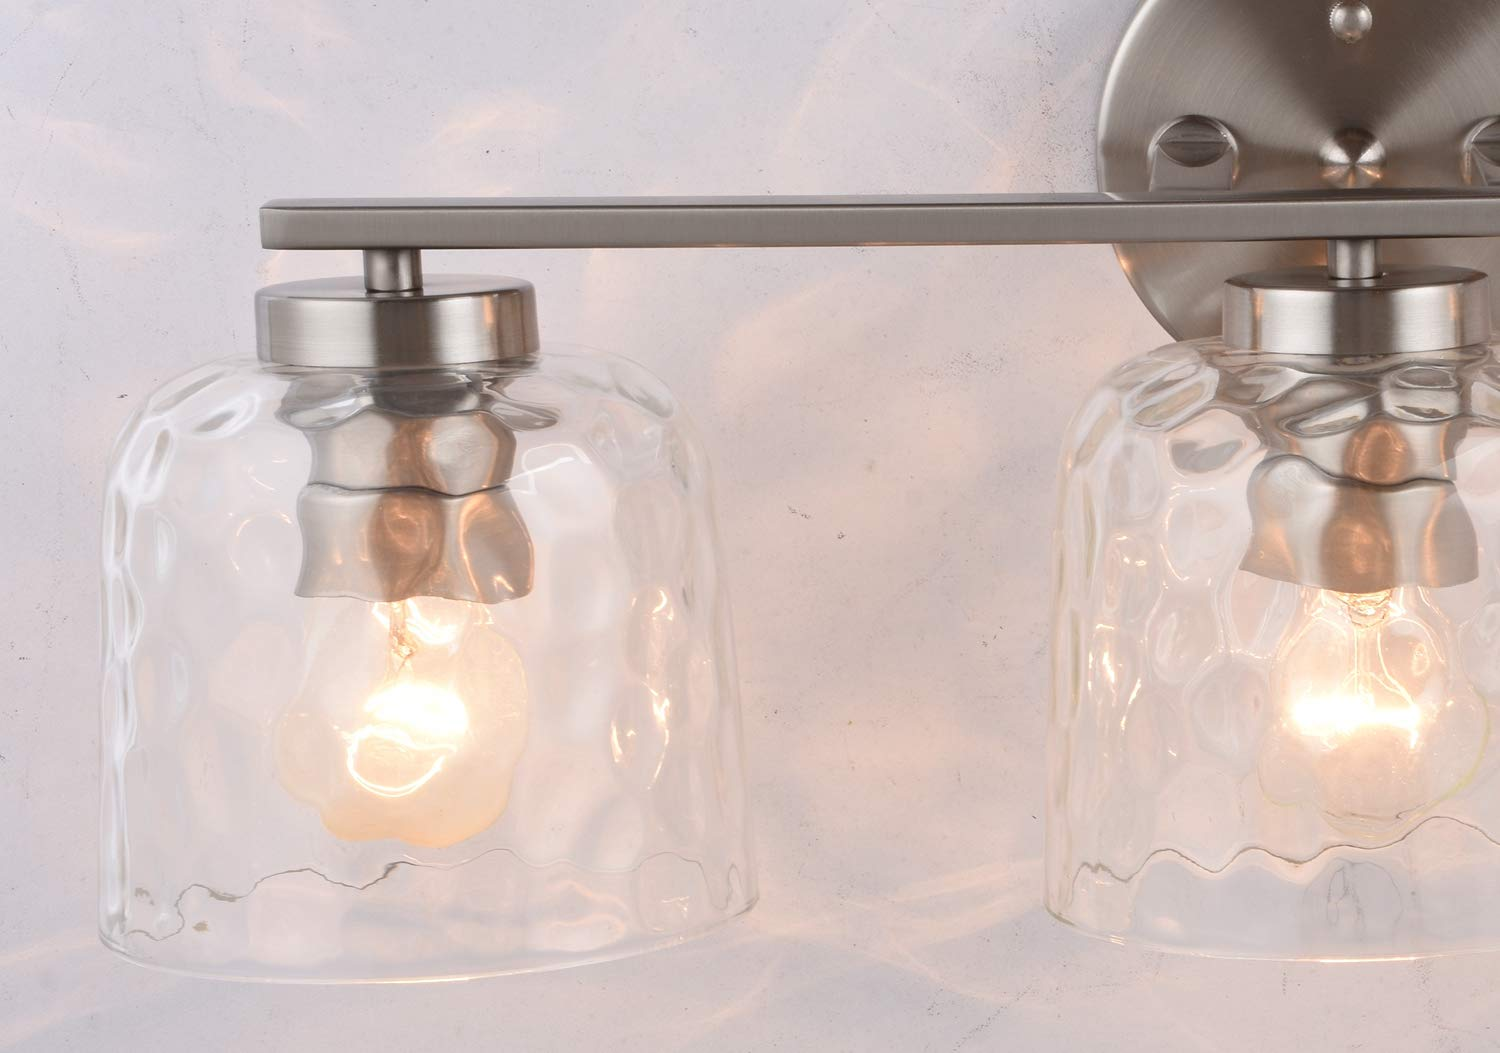 Alice House 20'' Vanity Lights with Hammered Glass, 3 Light Wall Lighting, Brushed Nickel Bathroom Lights Over Mirror, Bathroom Lighting AL6091-W3 by ALICE HOUSE (Image #6)